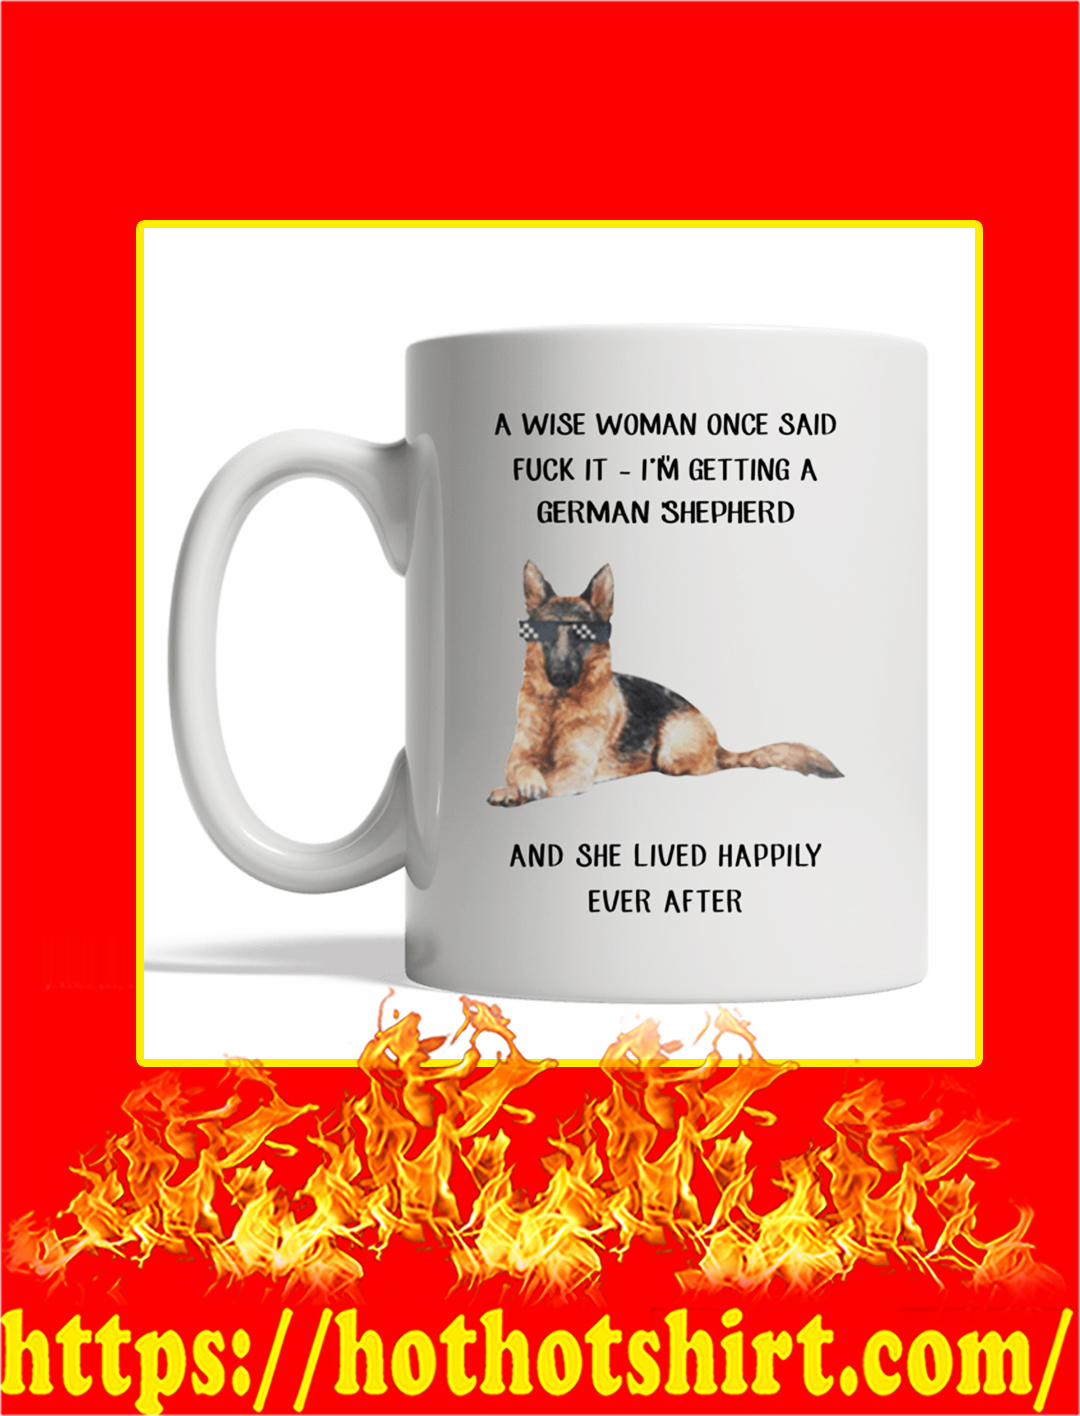 A Wise Woman Once Said Fuck It I'm Getting A German Shepherd Mug- white